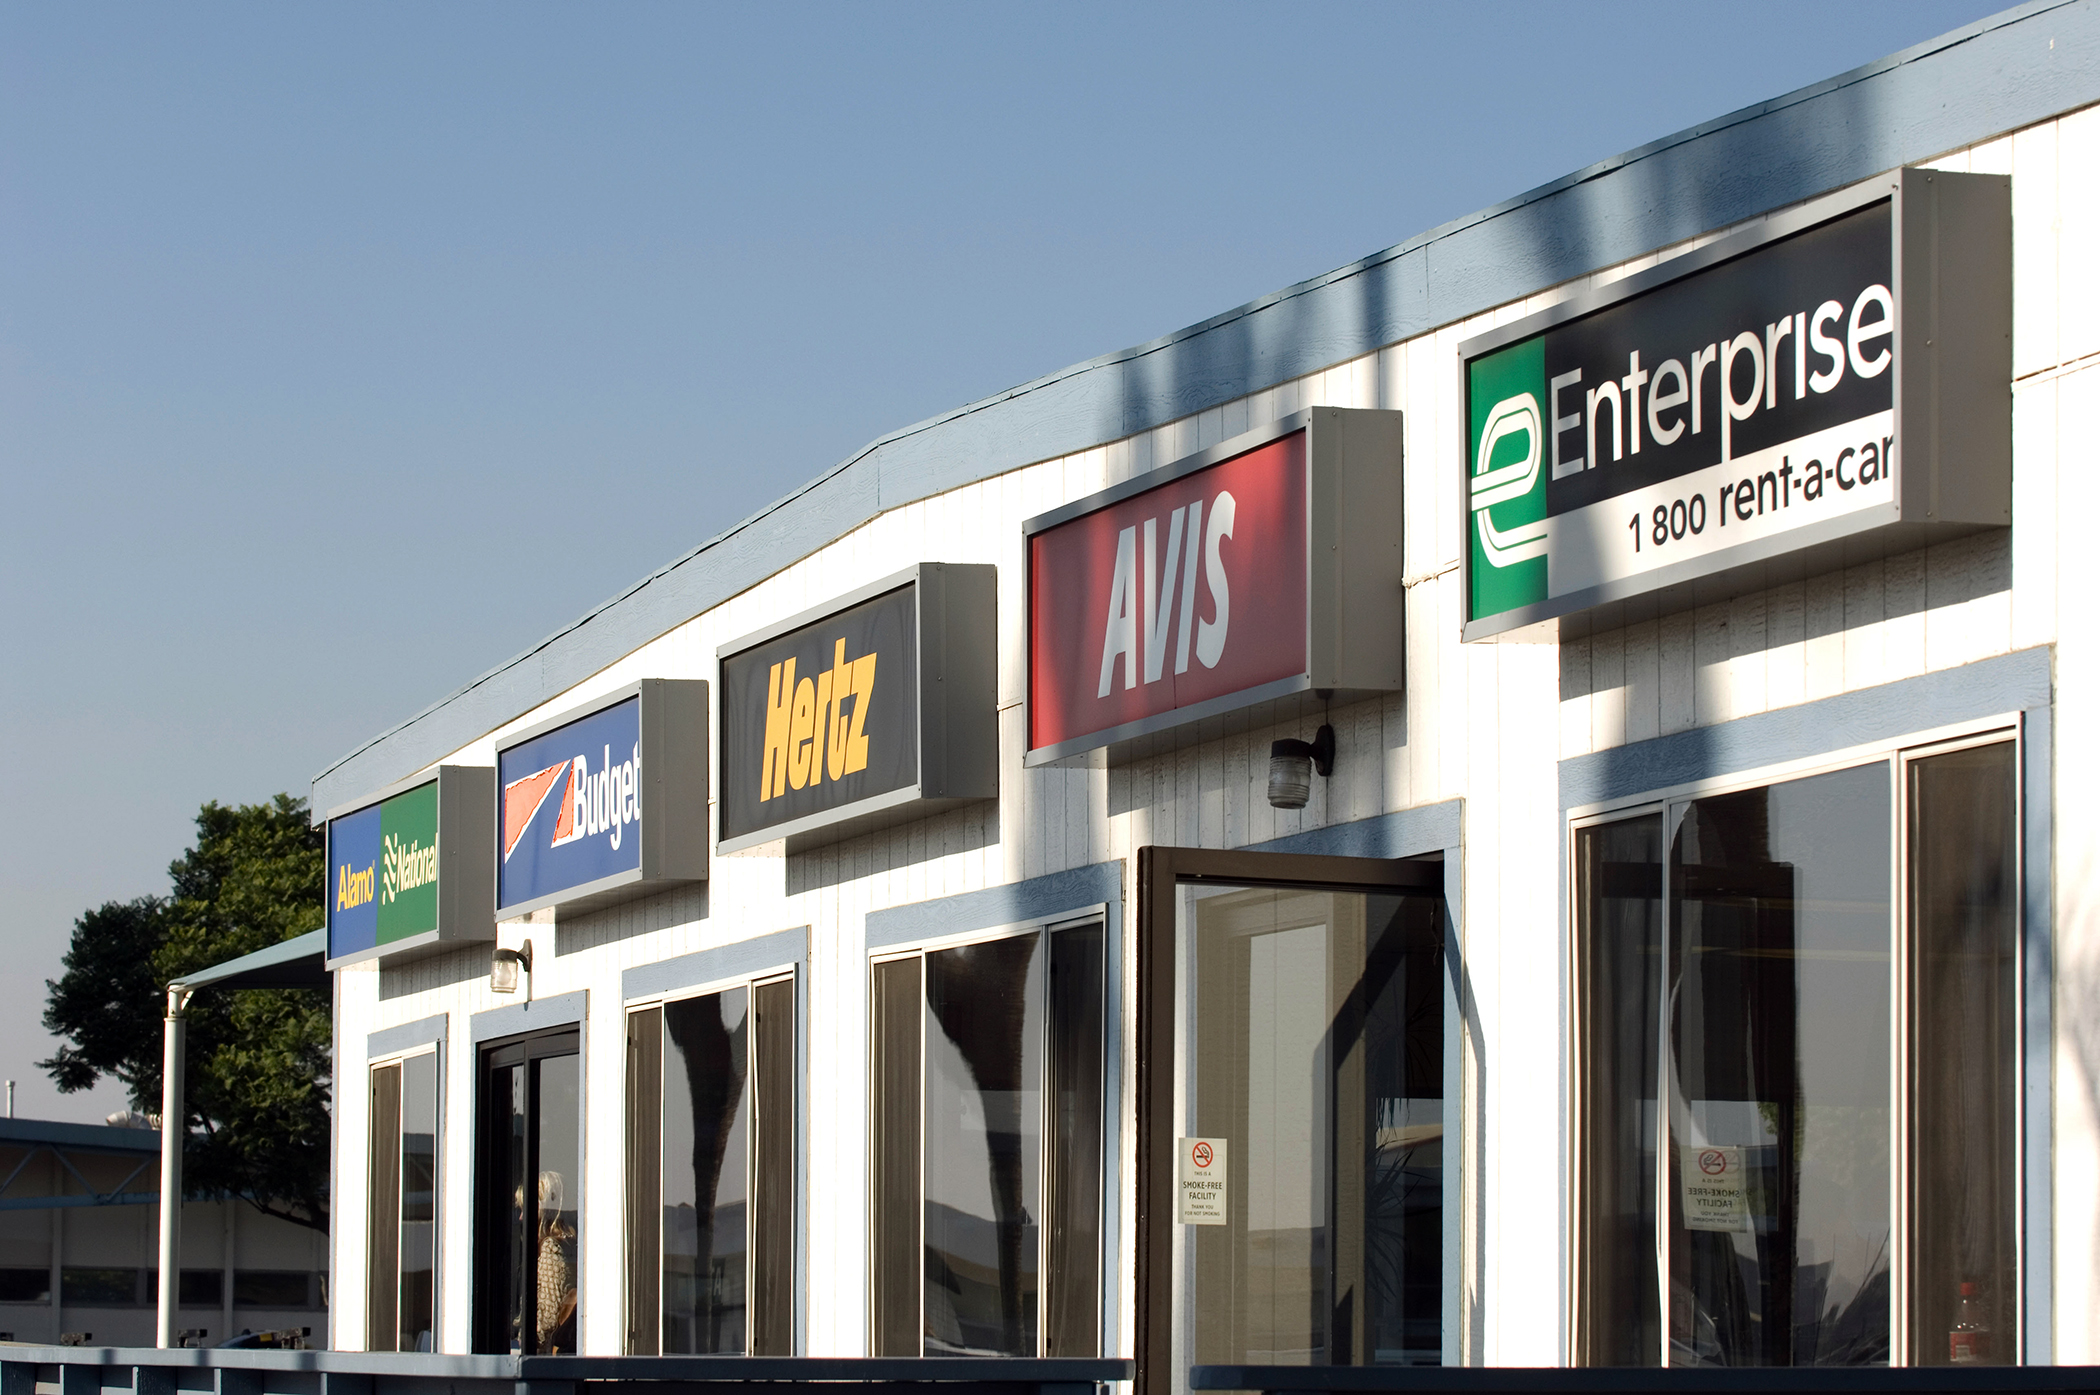 Airport car rental offices at the Long Beach California Airport